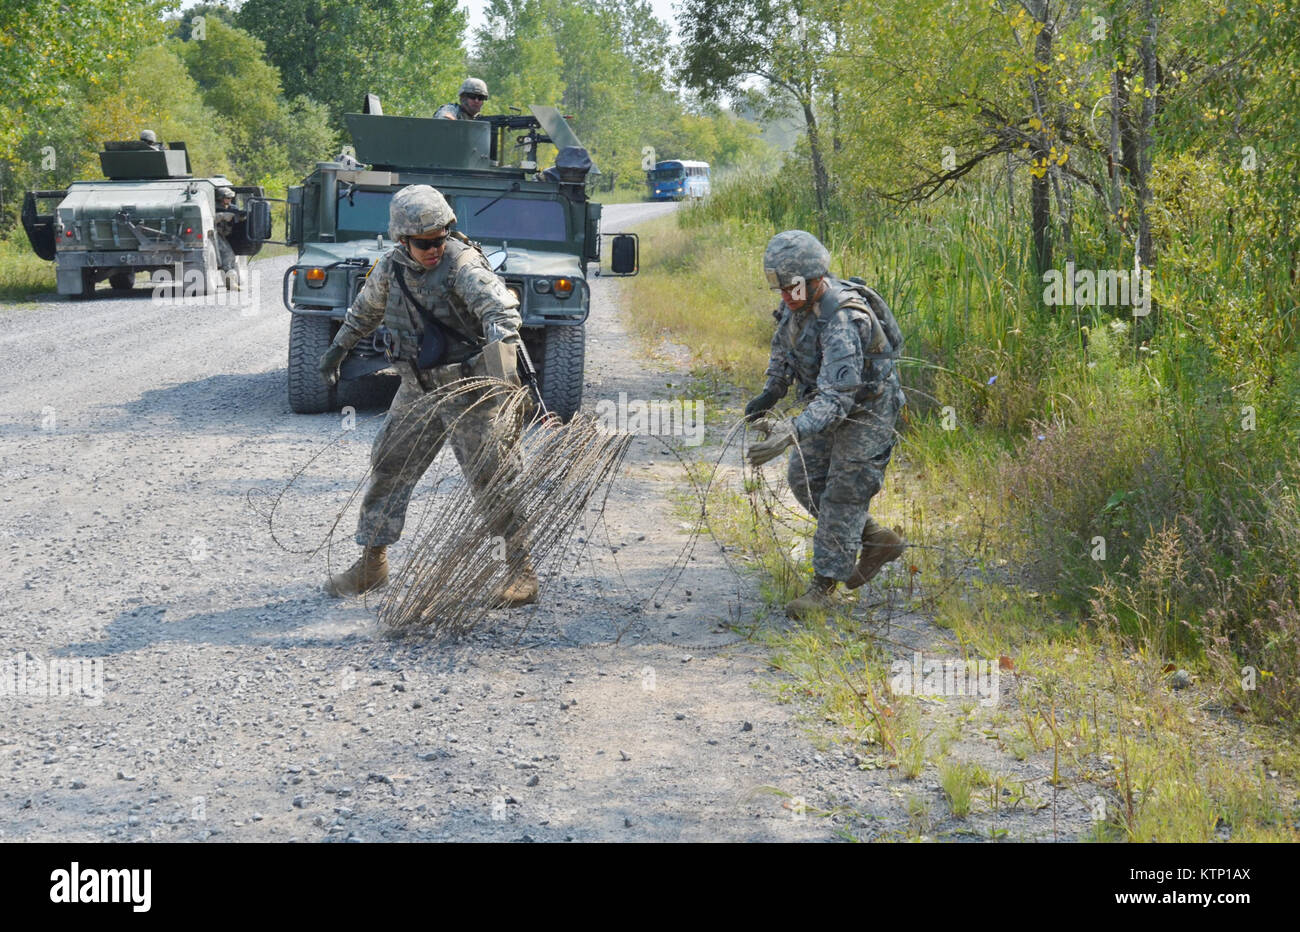 Soldiers of the 42d ID NYARNG, and 642 ASB during their mounted training exercise held on AUg 21st at Ft Drum. This Stock Photo